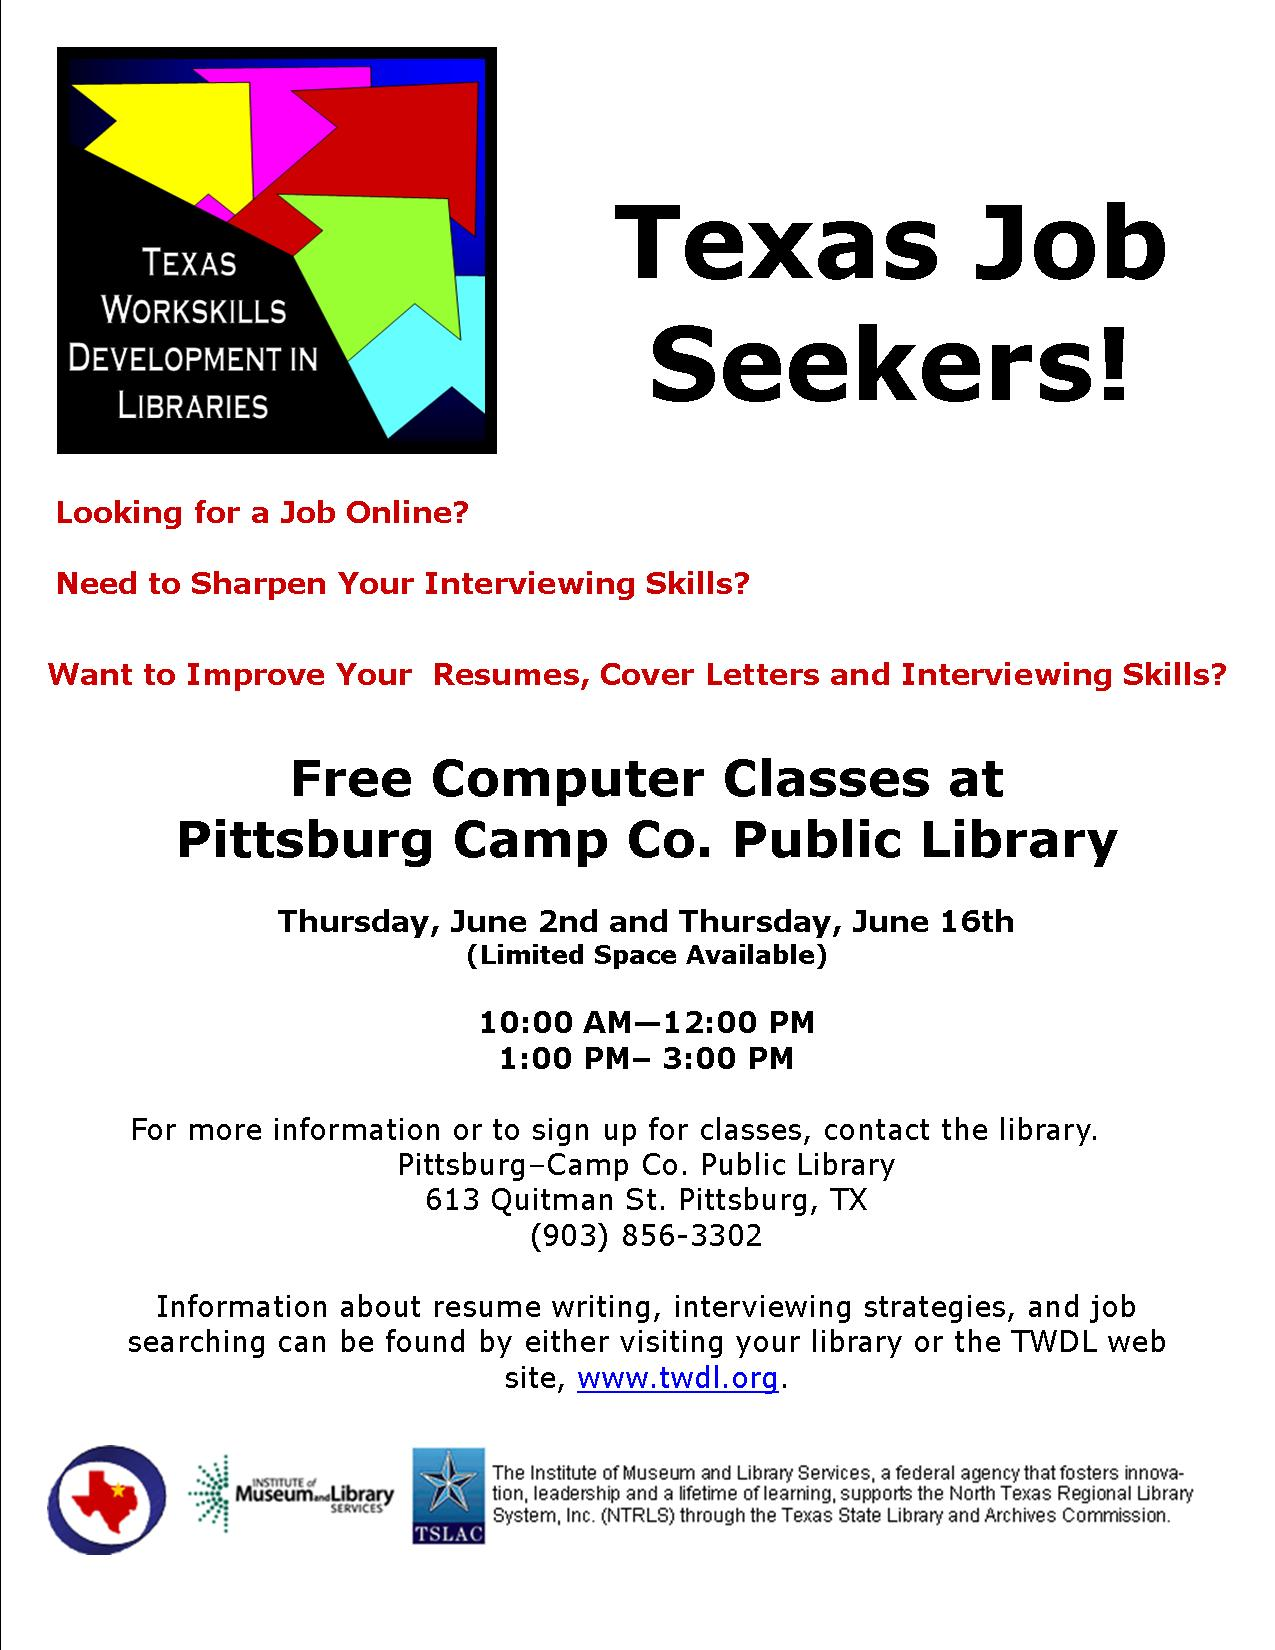 Texas Job Seekers Poster